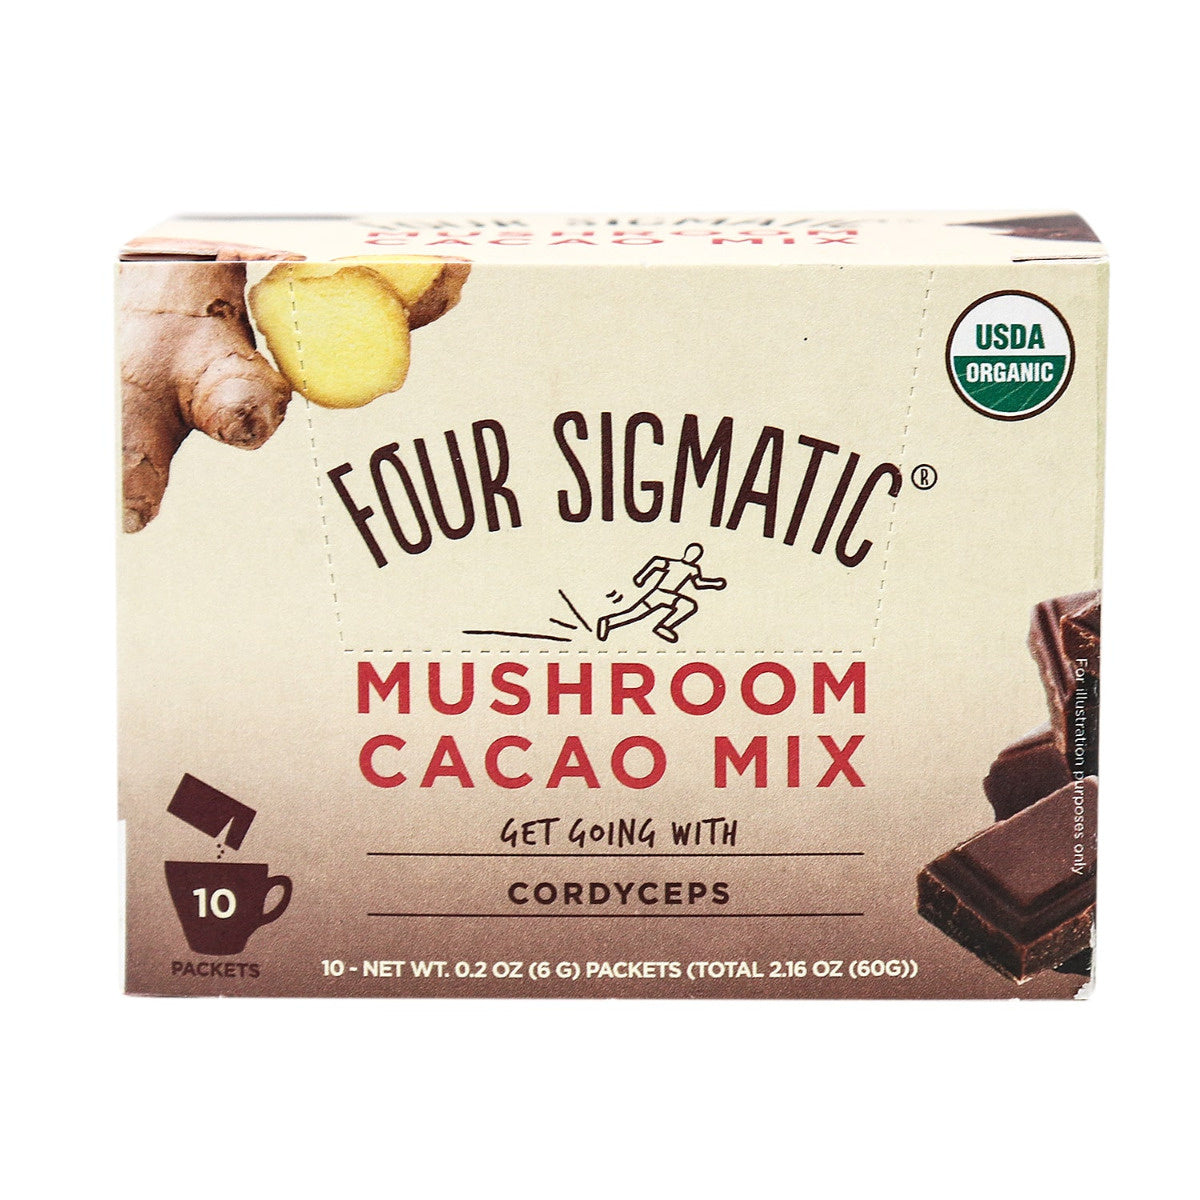 Mushroom Hot Cacao Mix with Cordyceps